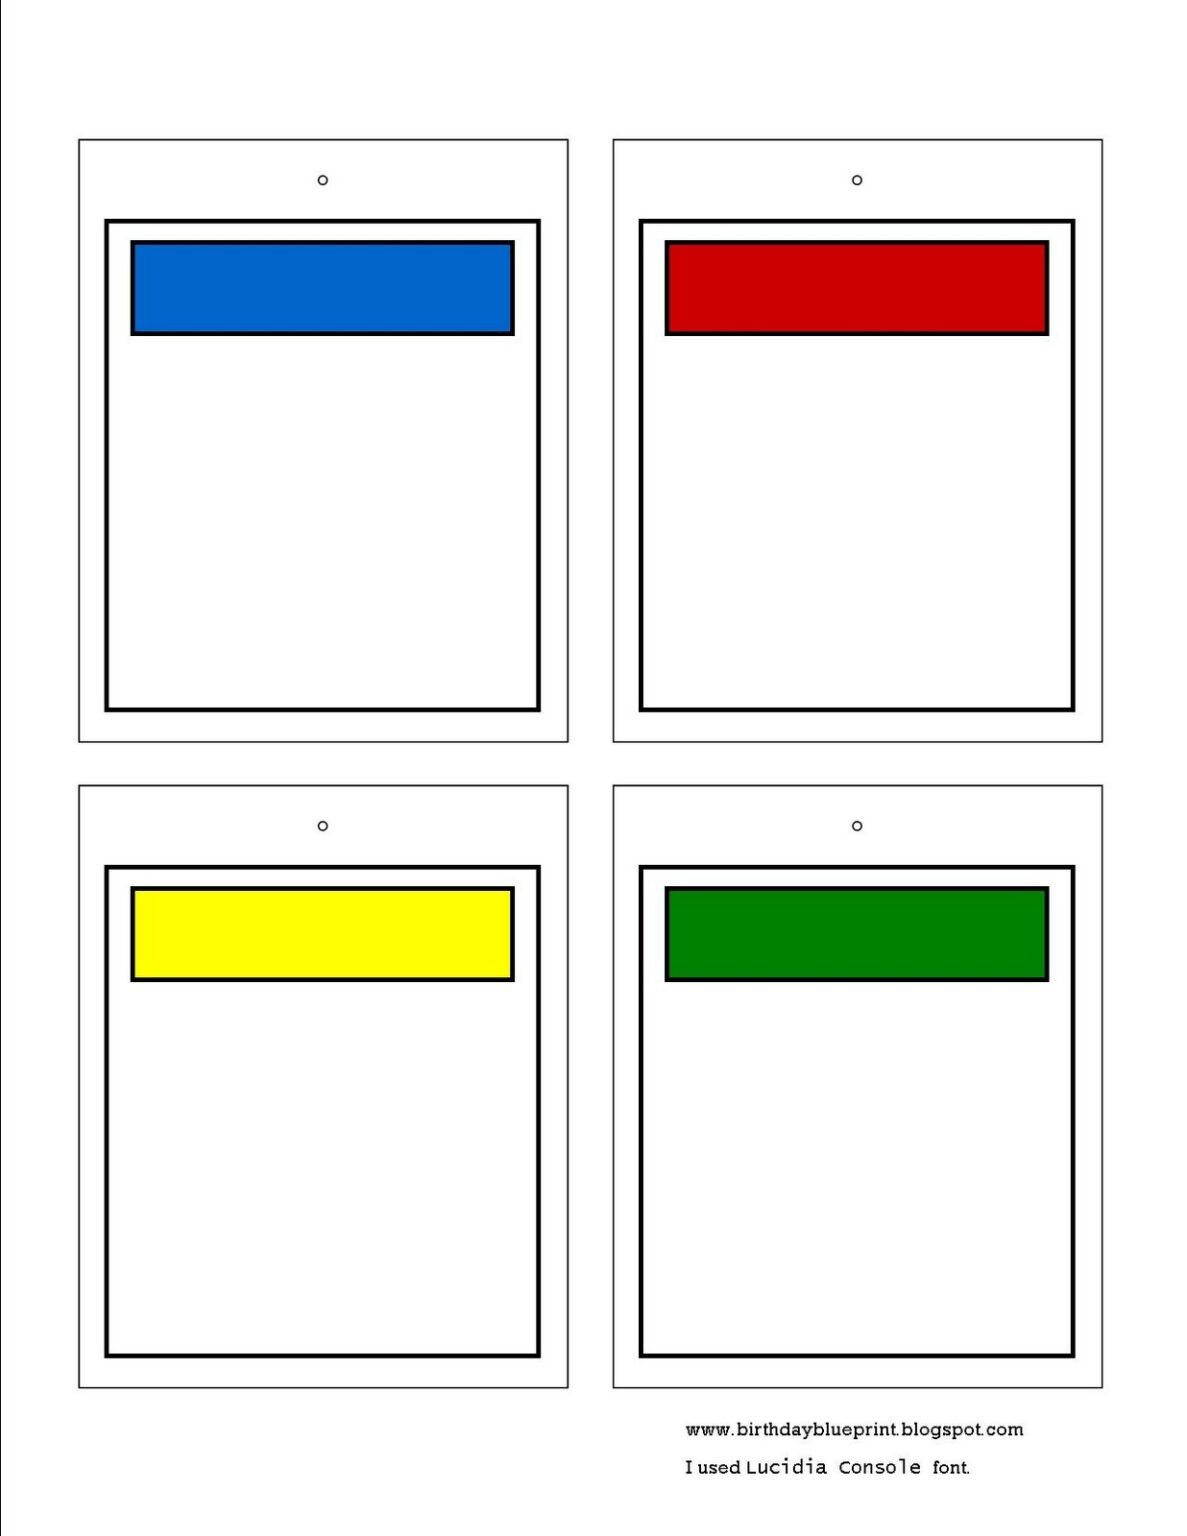 Monopoly Card Template Word Brilean Inside Template For Cards In Word In 2020 Monopoly Cards Board Game Party Board Game Themes